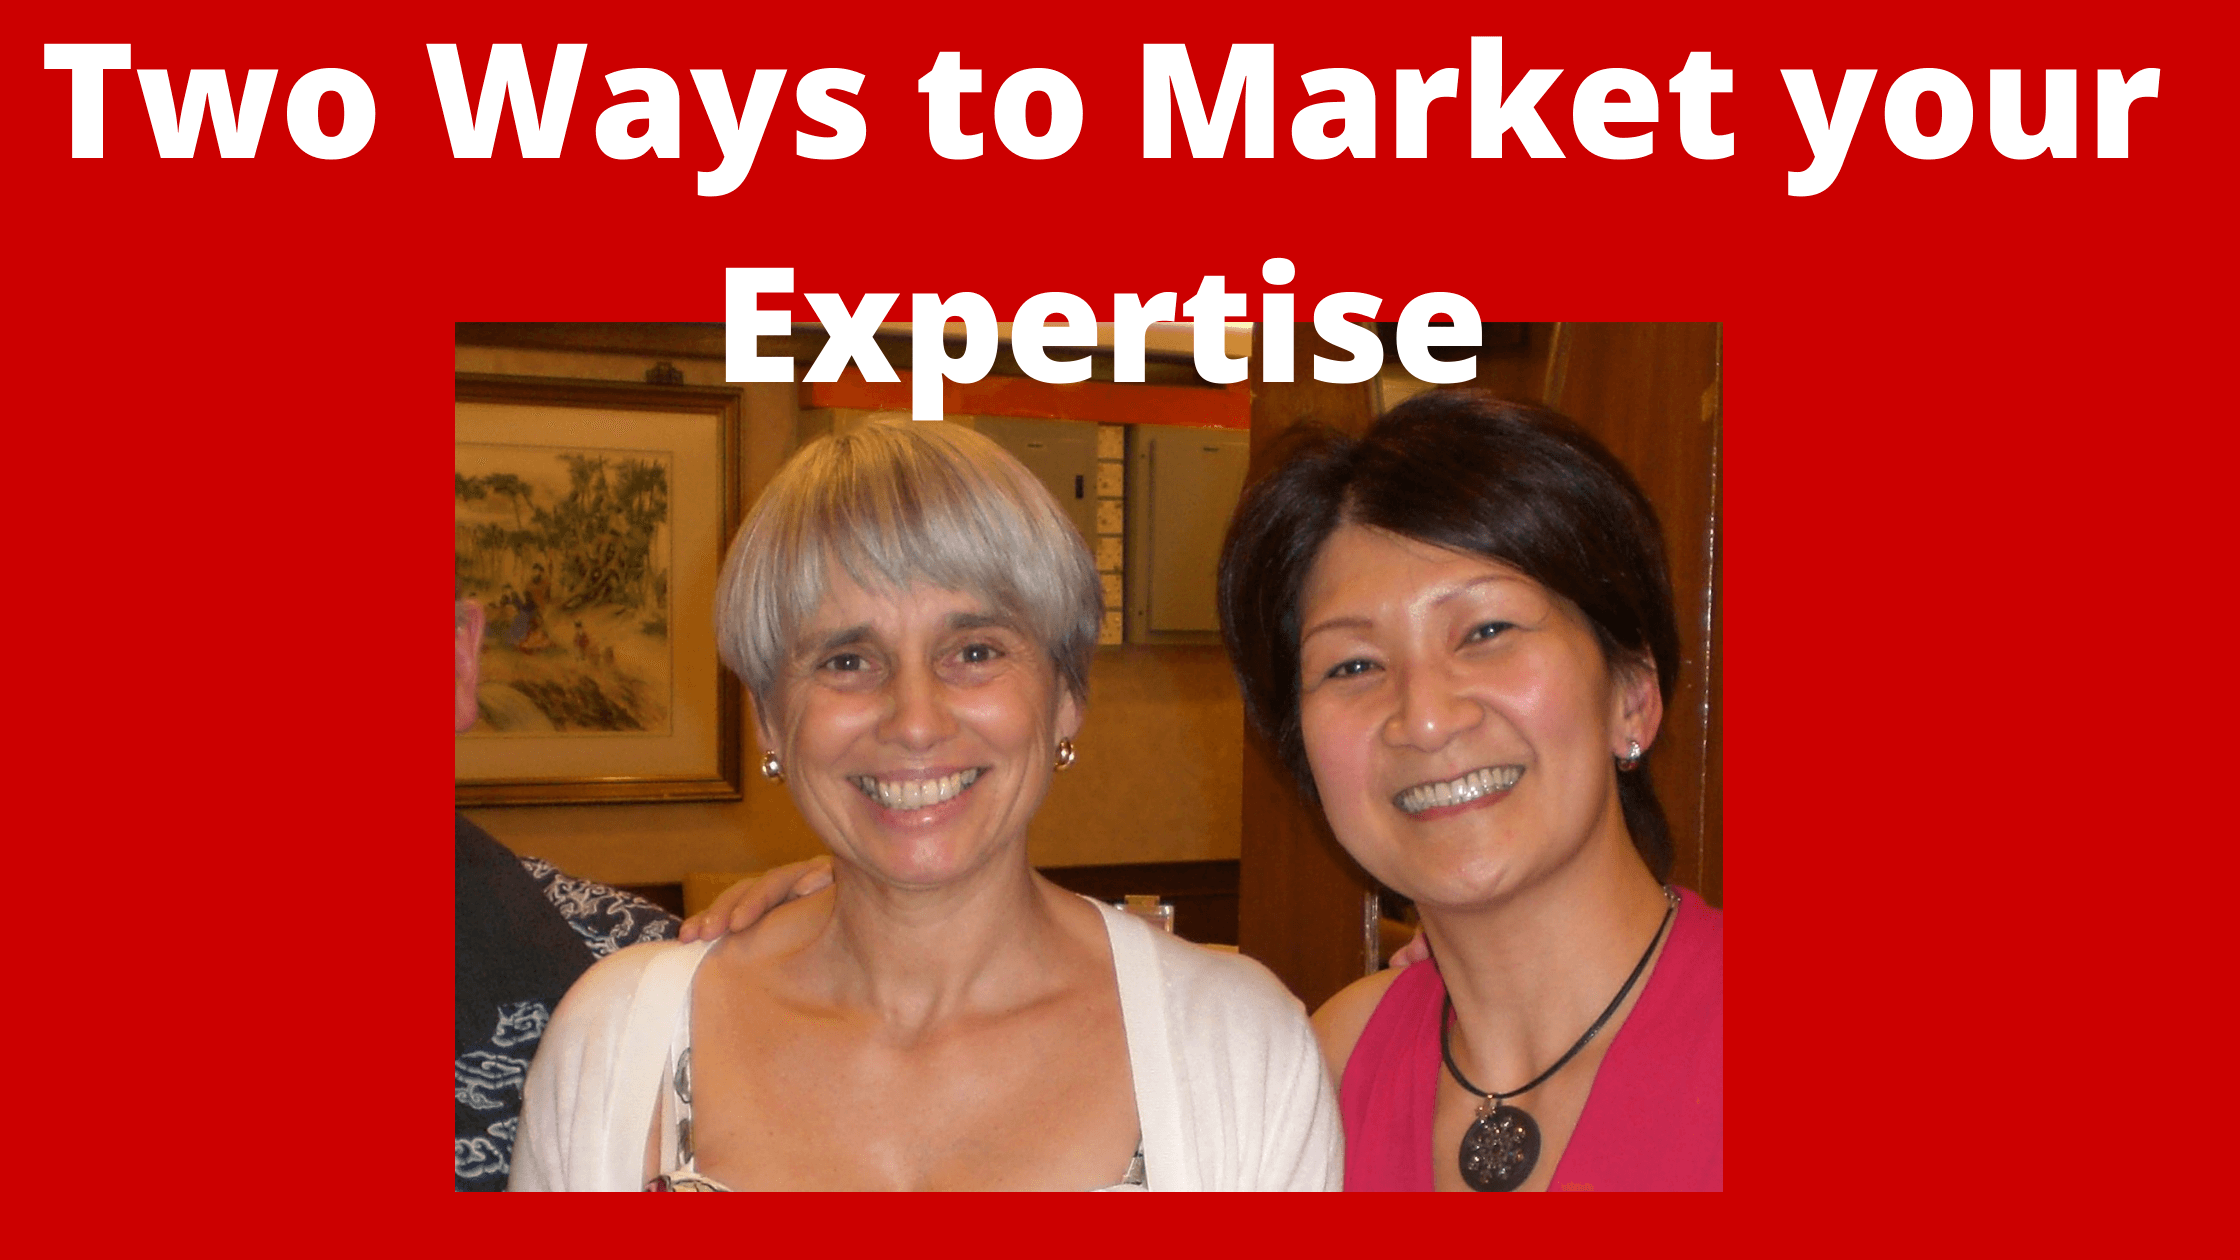 Two Ways to Market your Expertise